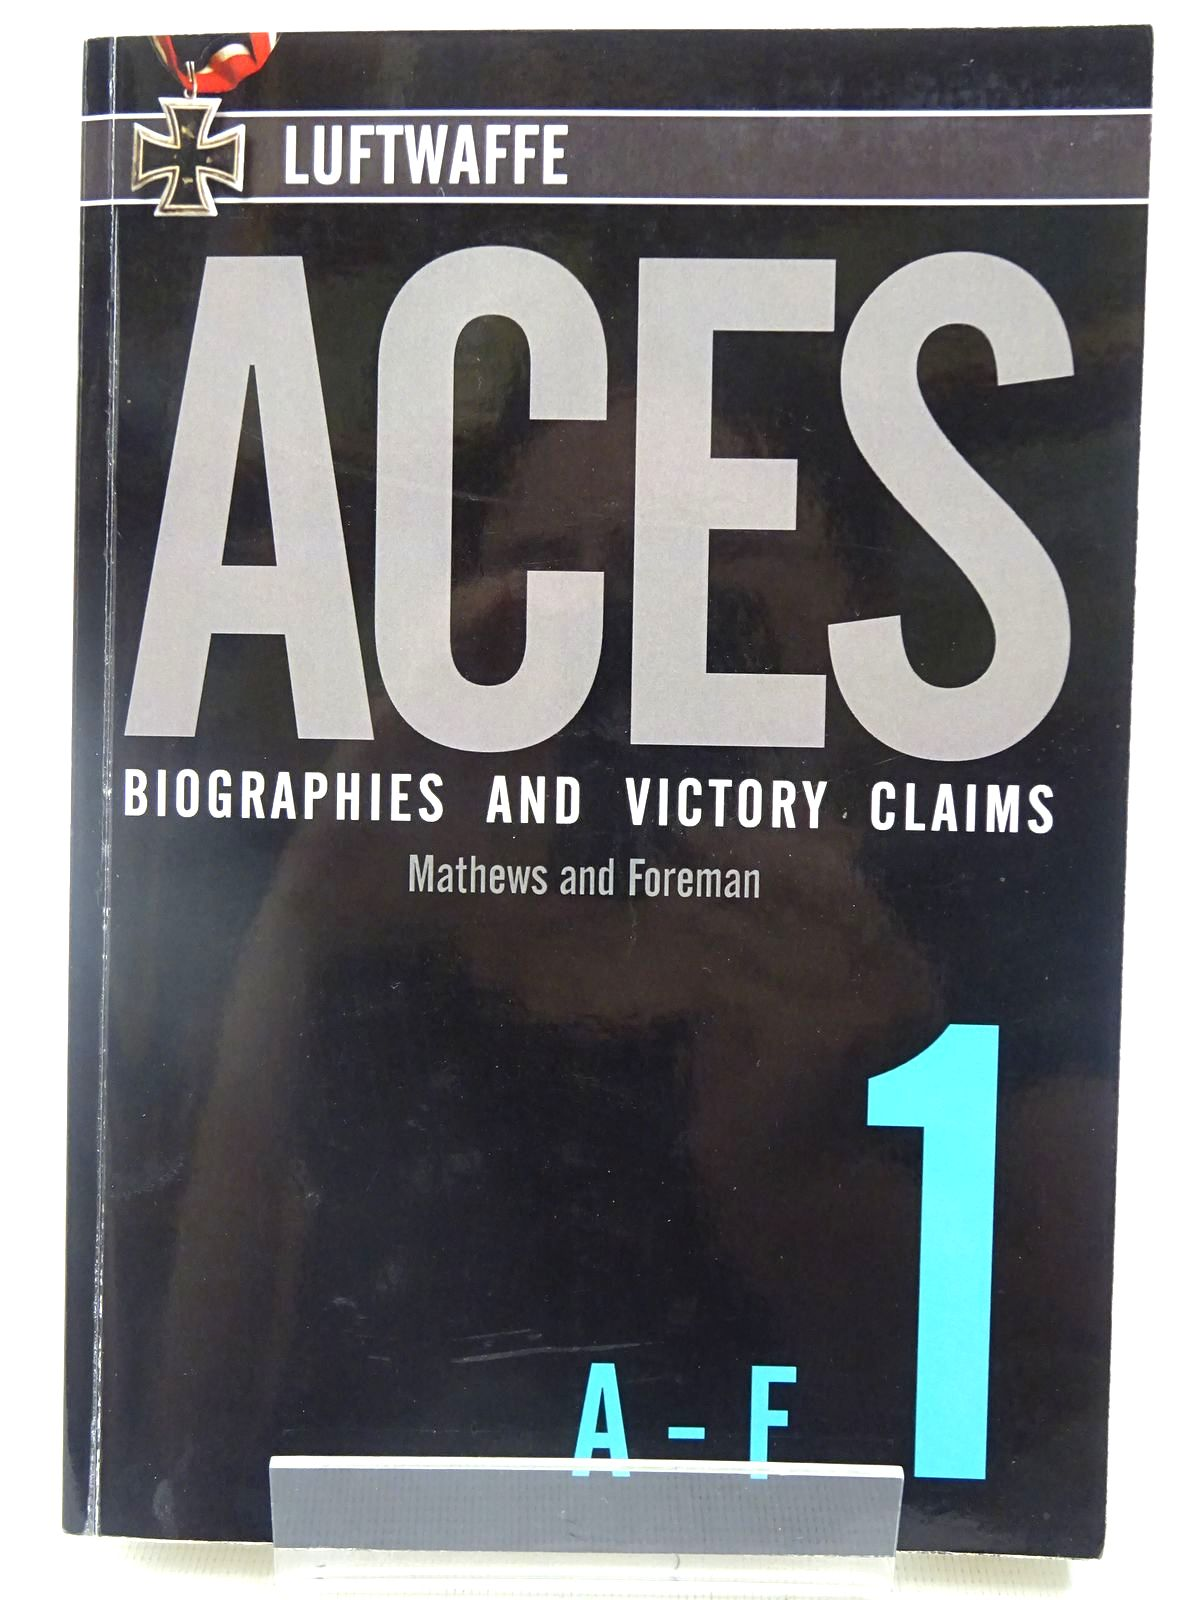 Photo of LUFTWAFFE ACES BIOGRAPHIES AND VICTORY CLAIMS VOLUME 1 A - F written by Matthews, Andrew Johannes<br />Foreman, John published by Red Kite (STOCK CODE: 2127963)  for sale by Stella & Rose's Books